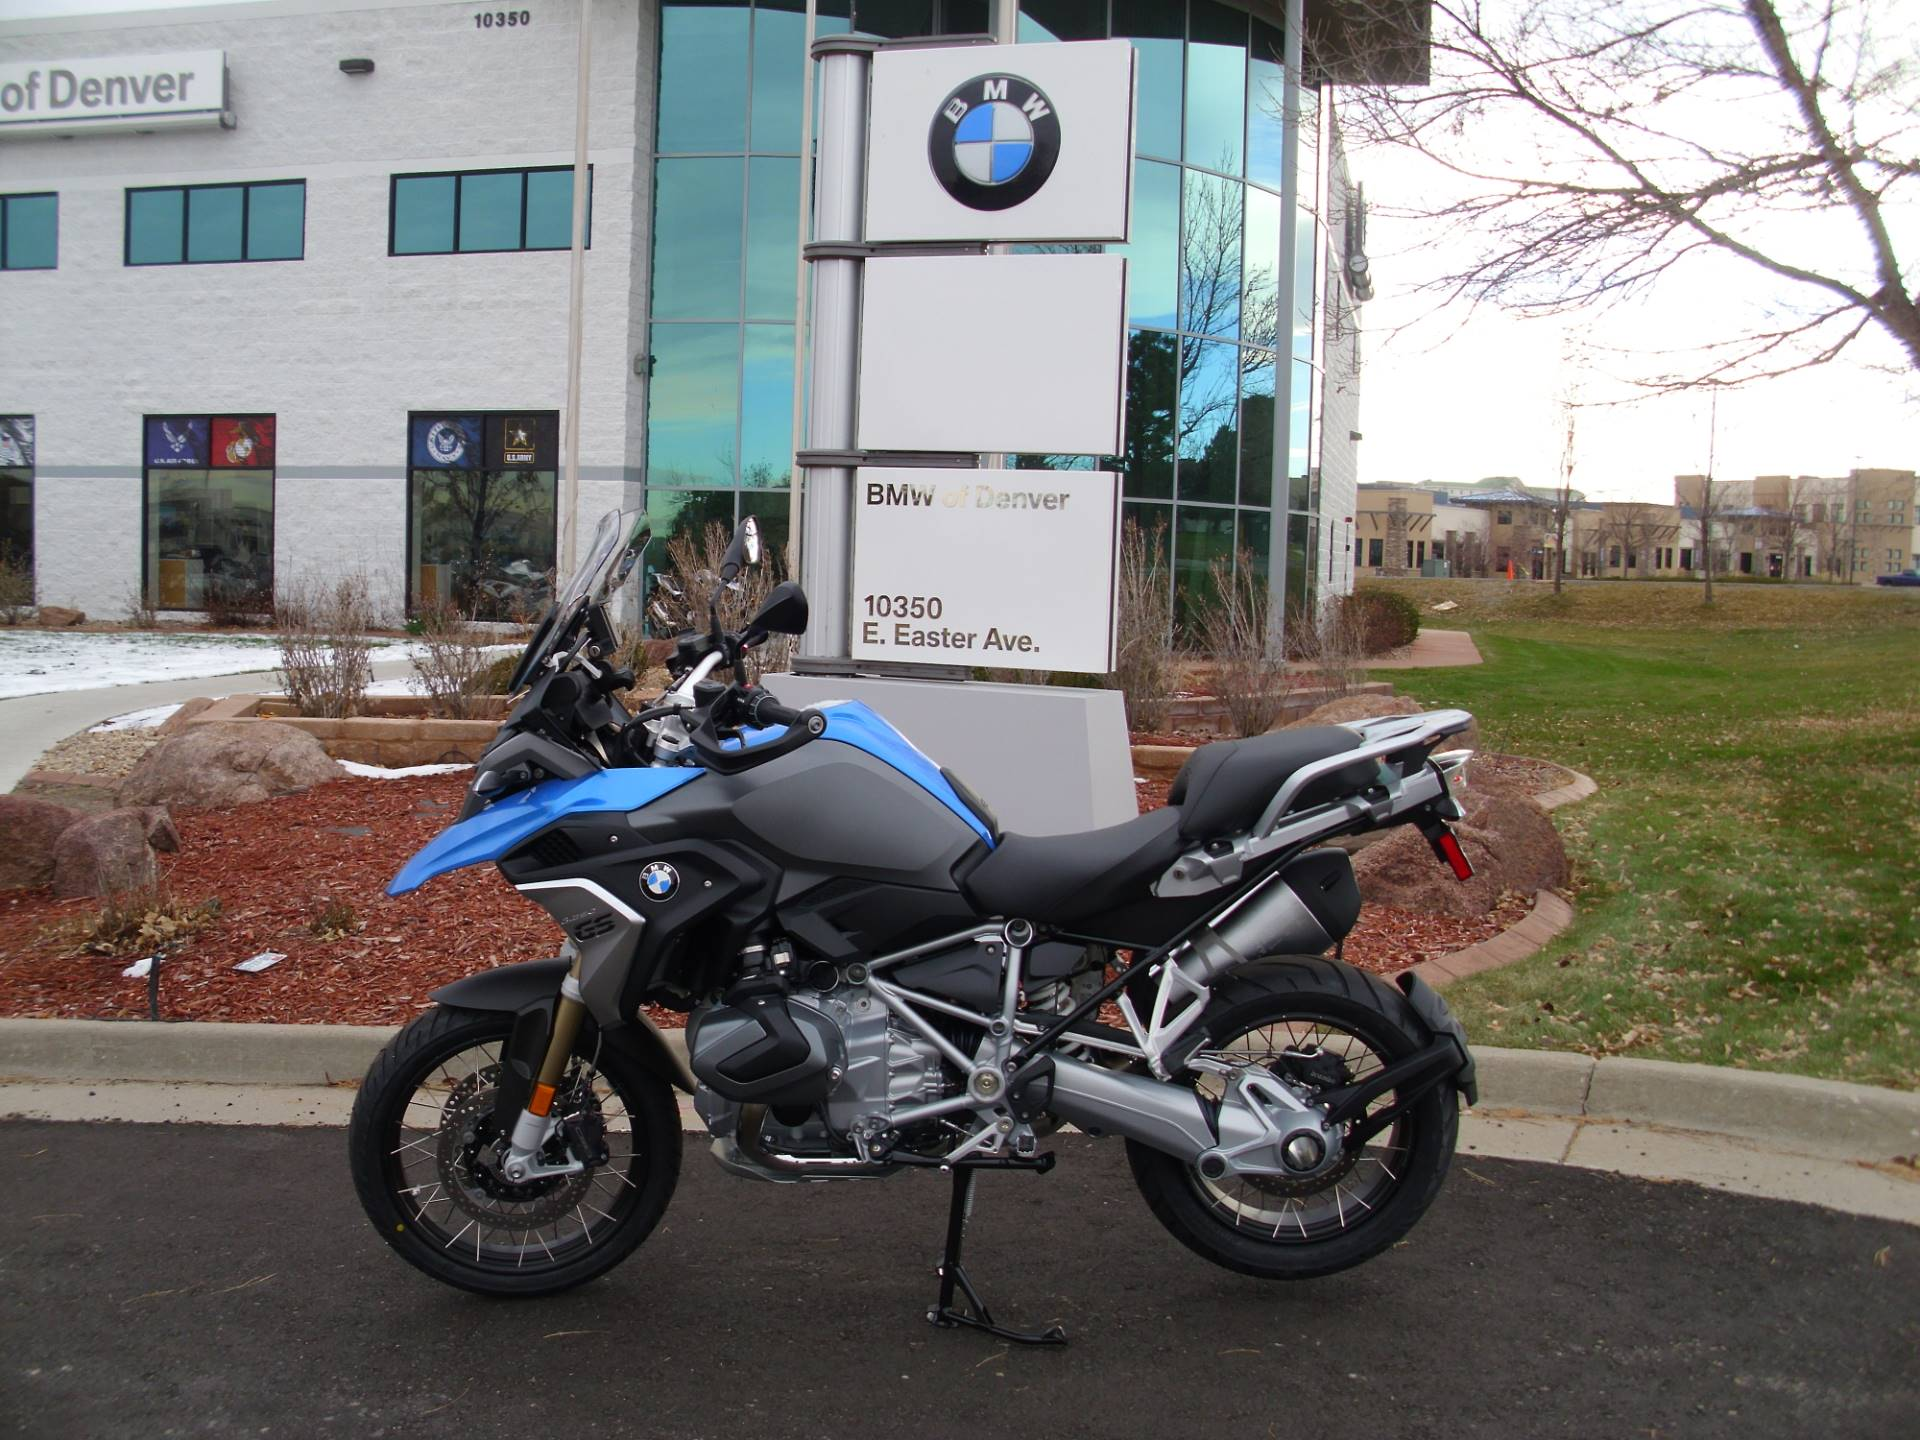 2019 Bmw R 1250 Gs In Centennial Colorado